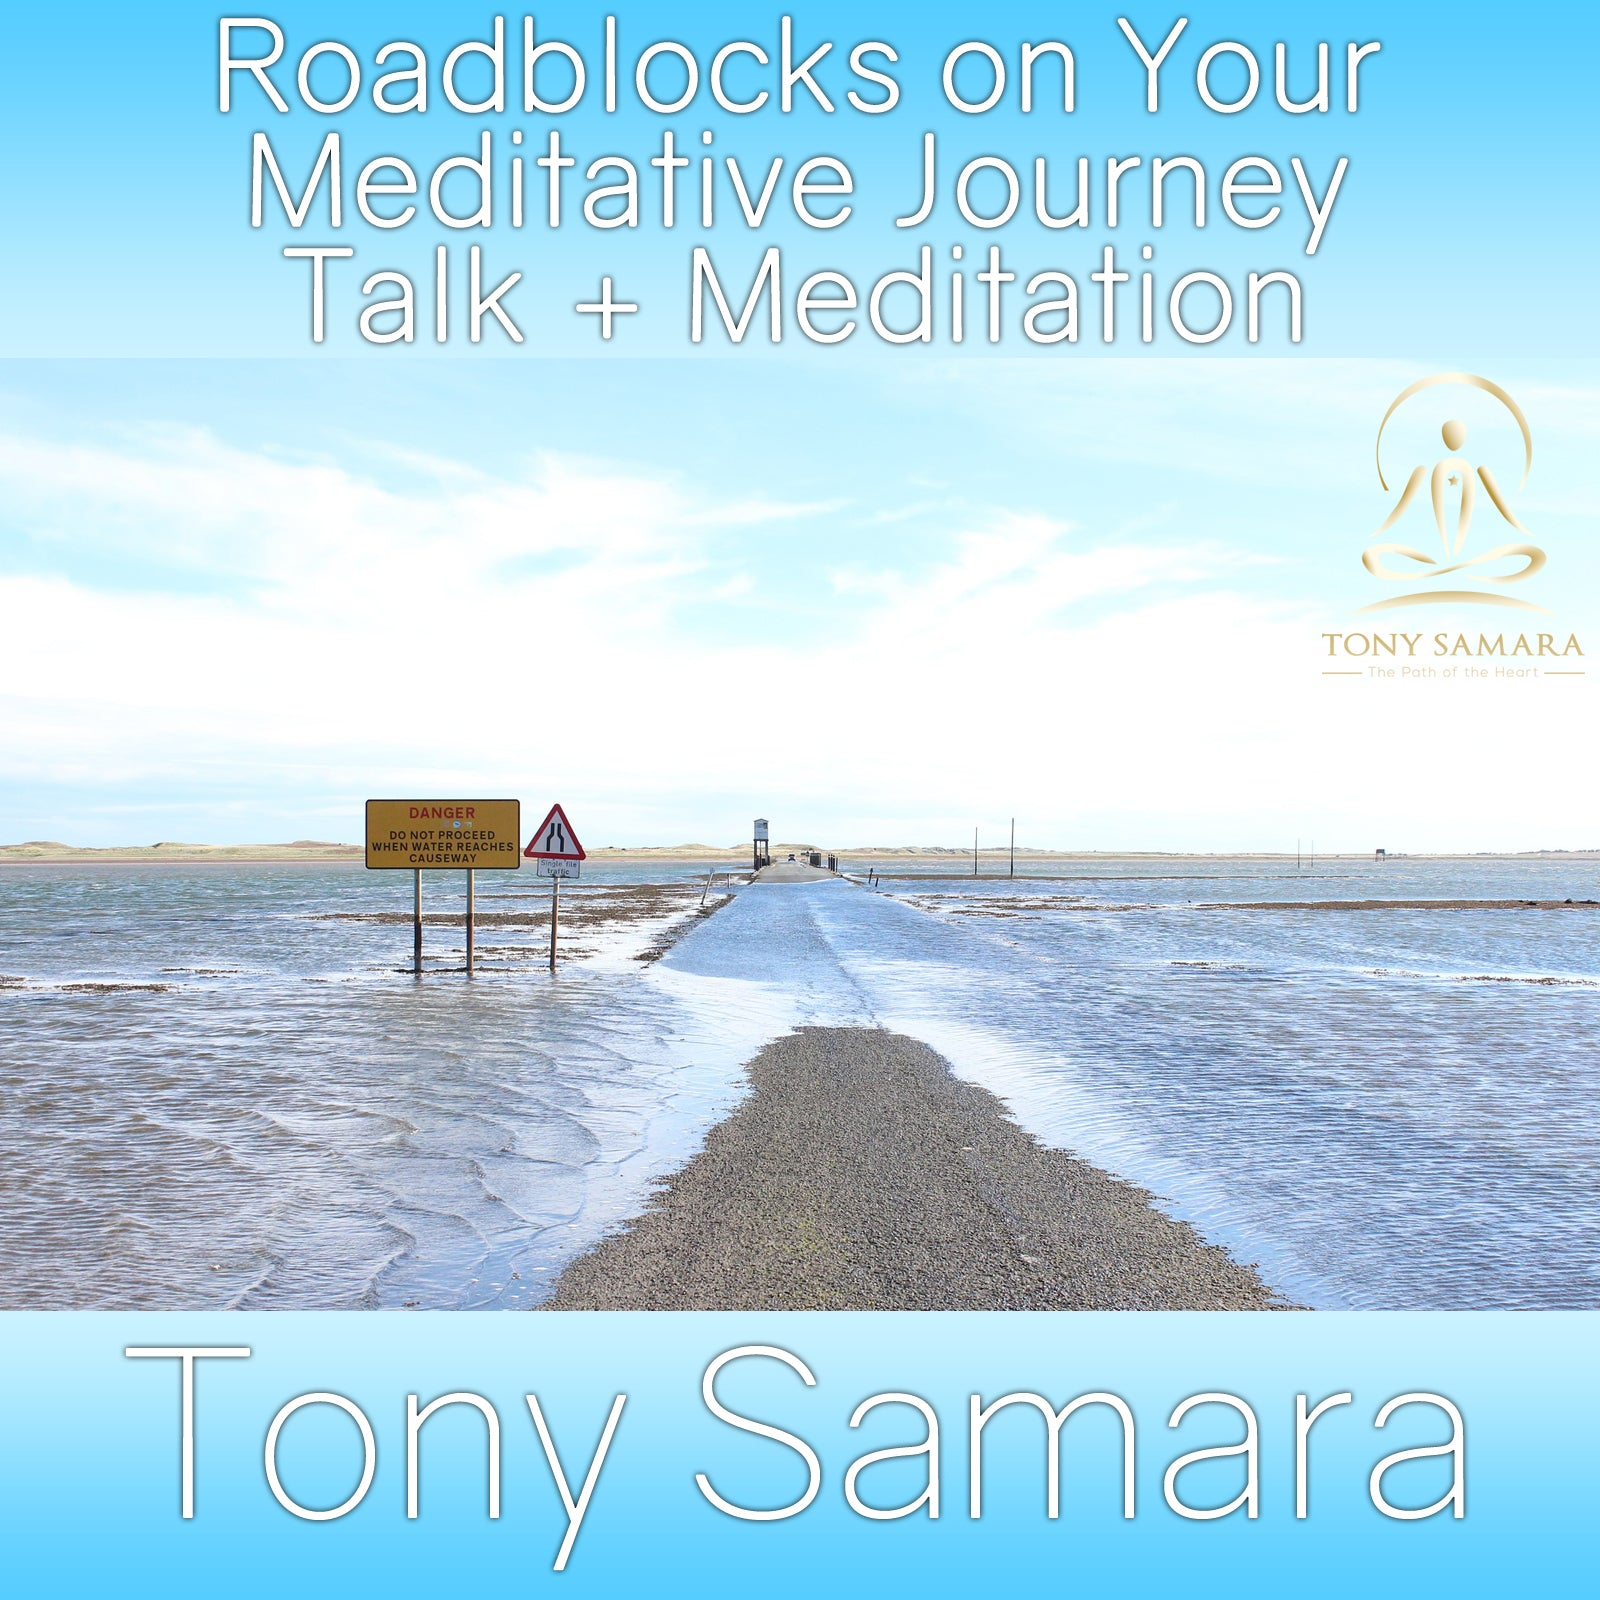 Roadblocks on Your Meditative Journey Talk + Meditation (MP3 Audio Download) - Tony Samara Meditation